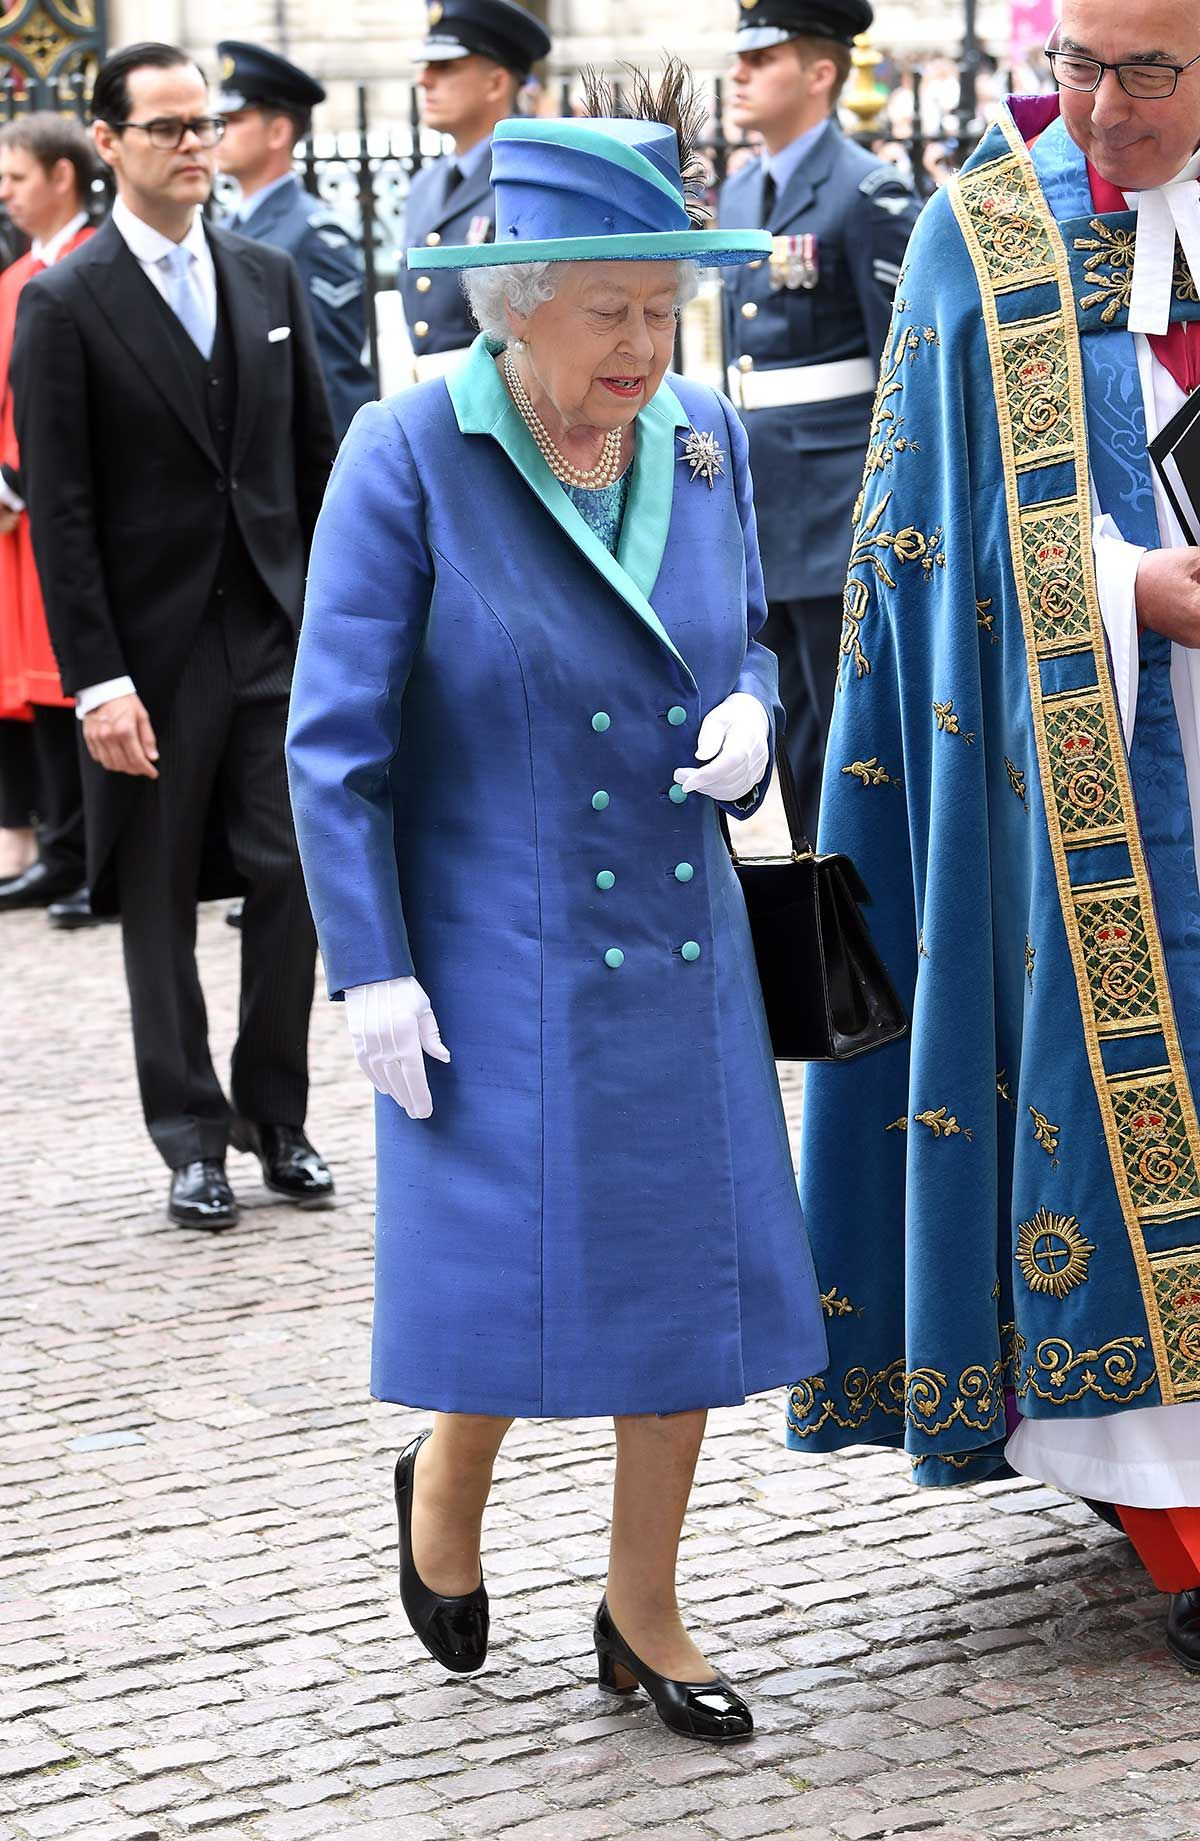 La reina Isabel II de Inglaterra en el centenario de la Royal Air Force